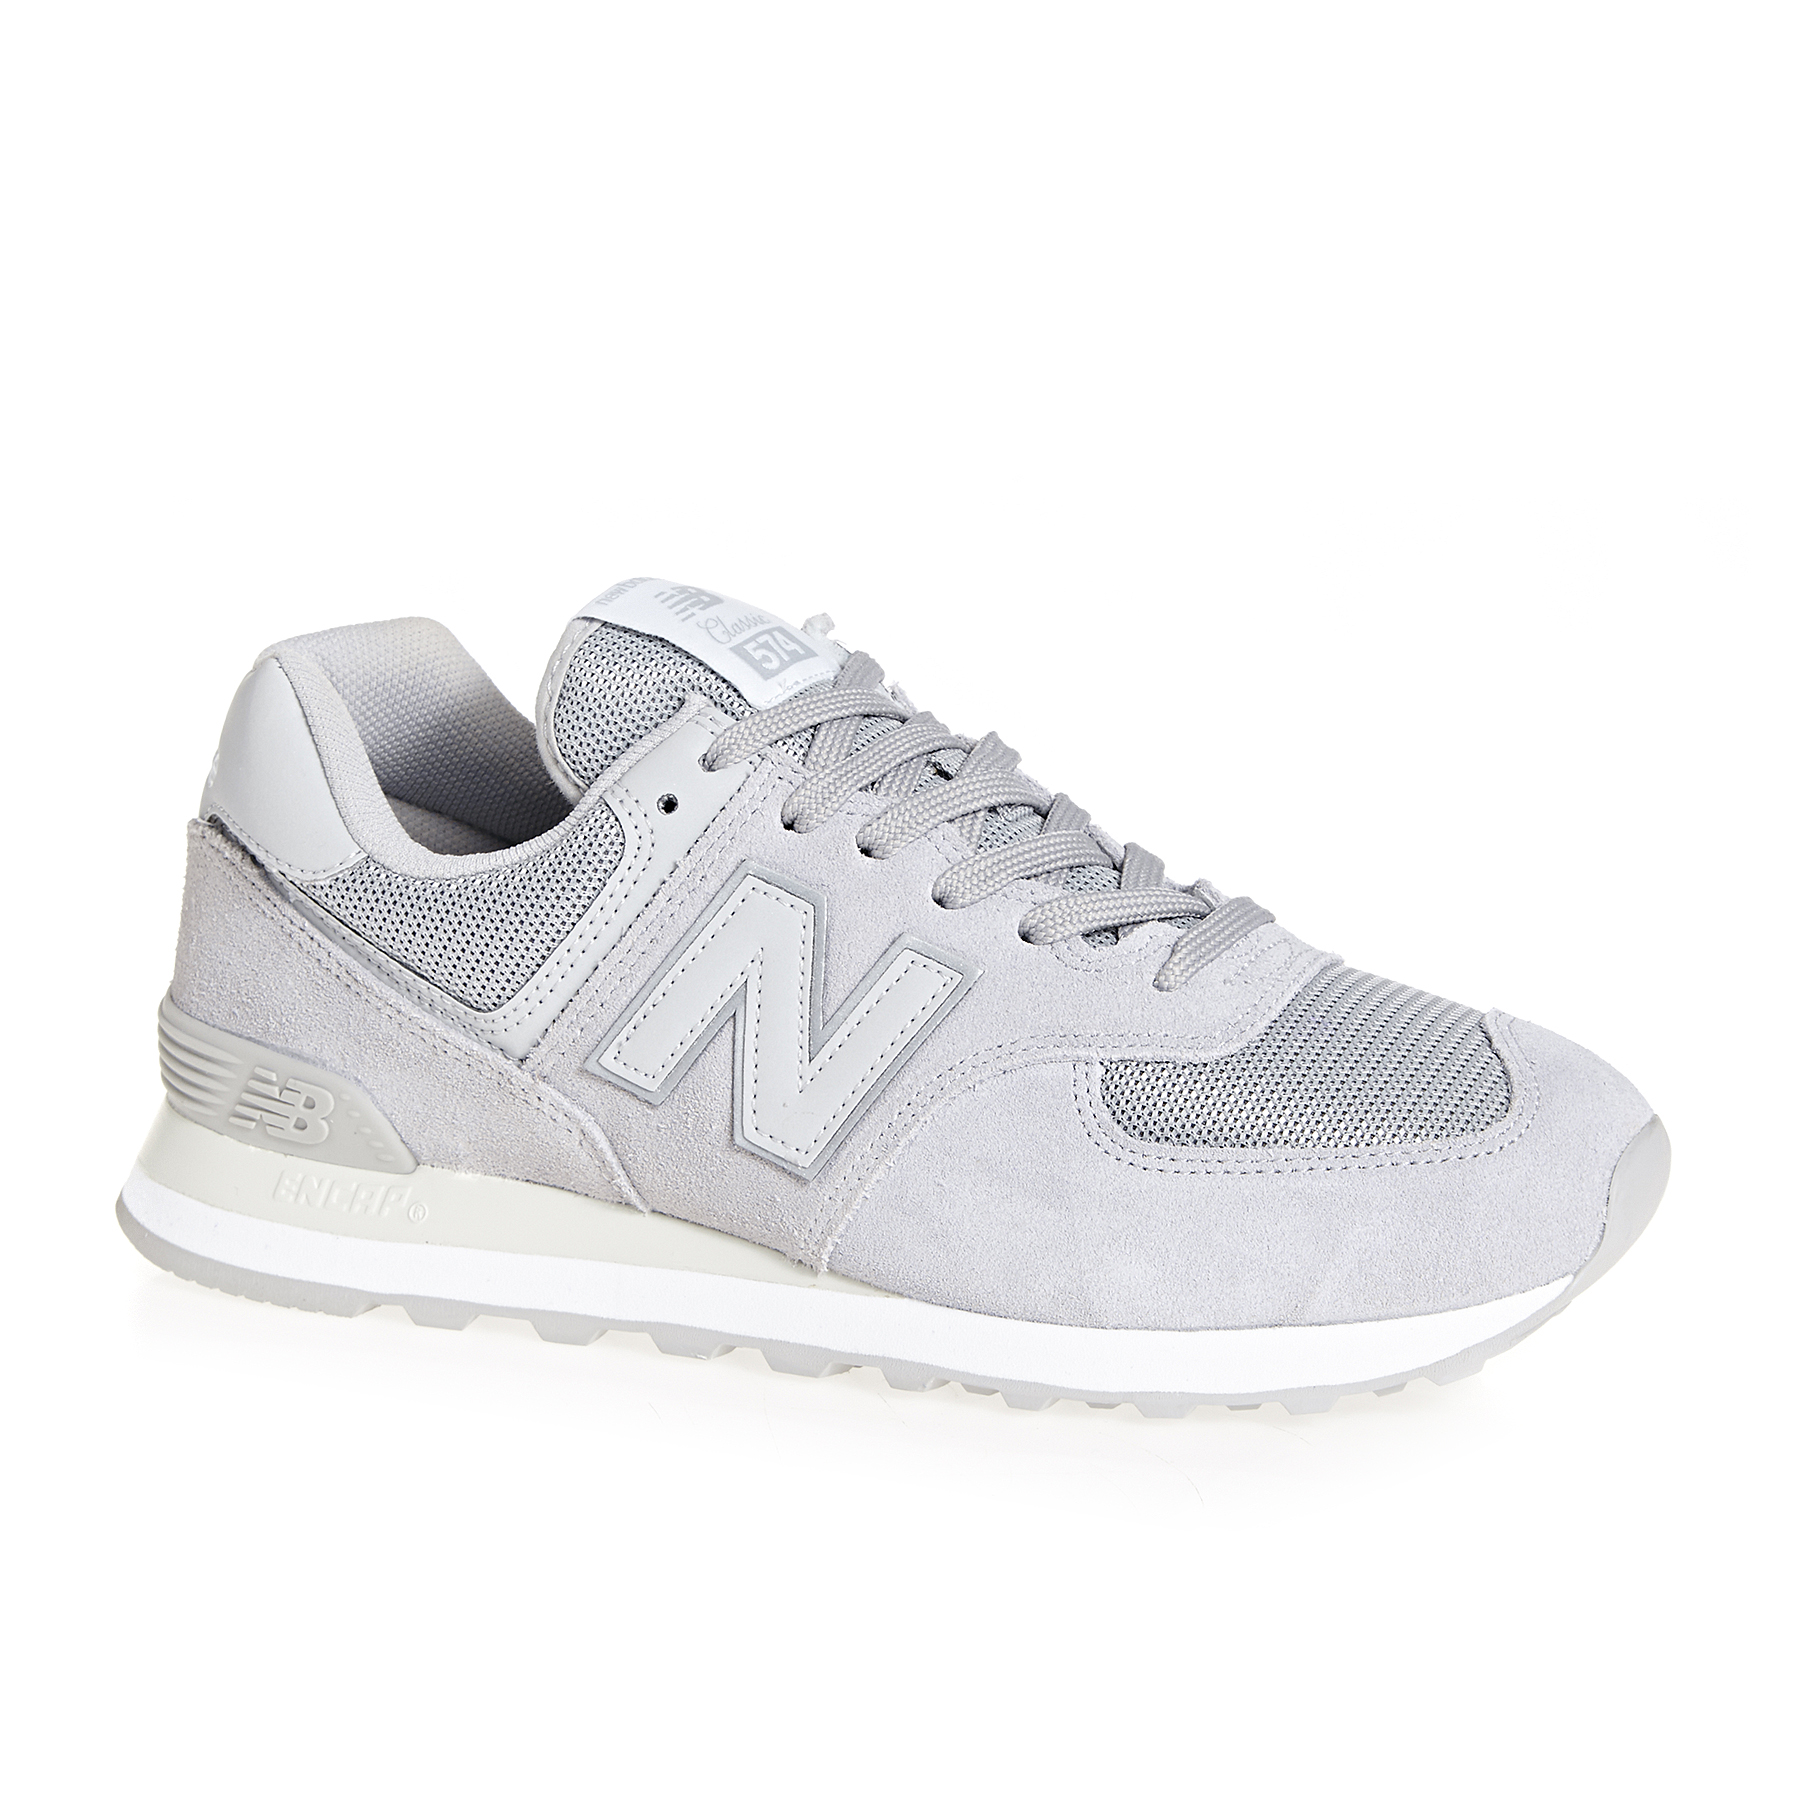 sports shoes eab94 a5b03 new balance ml574 shoes